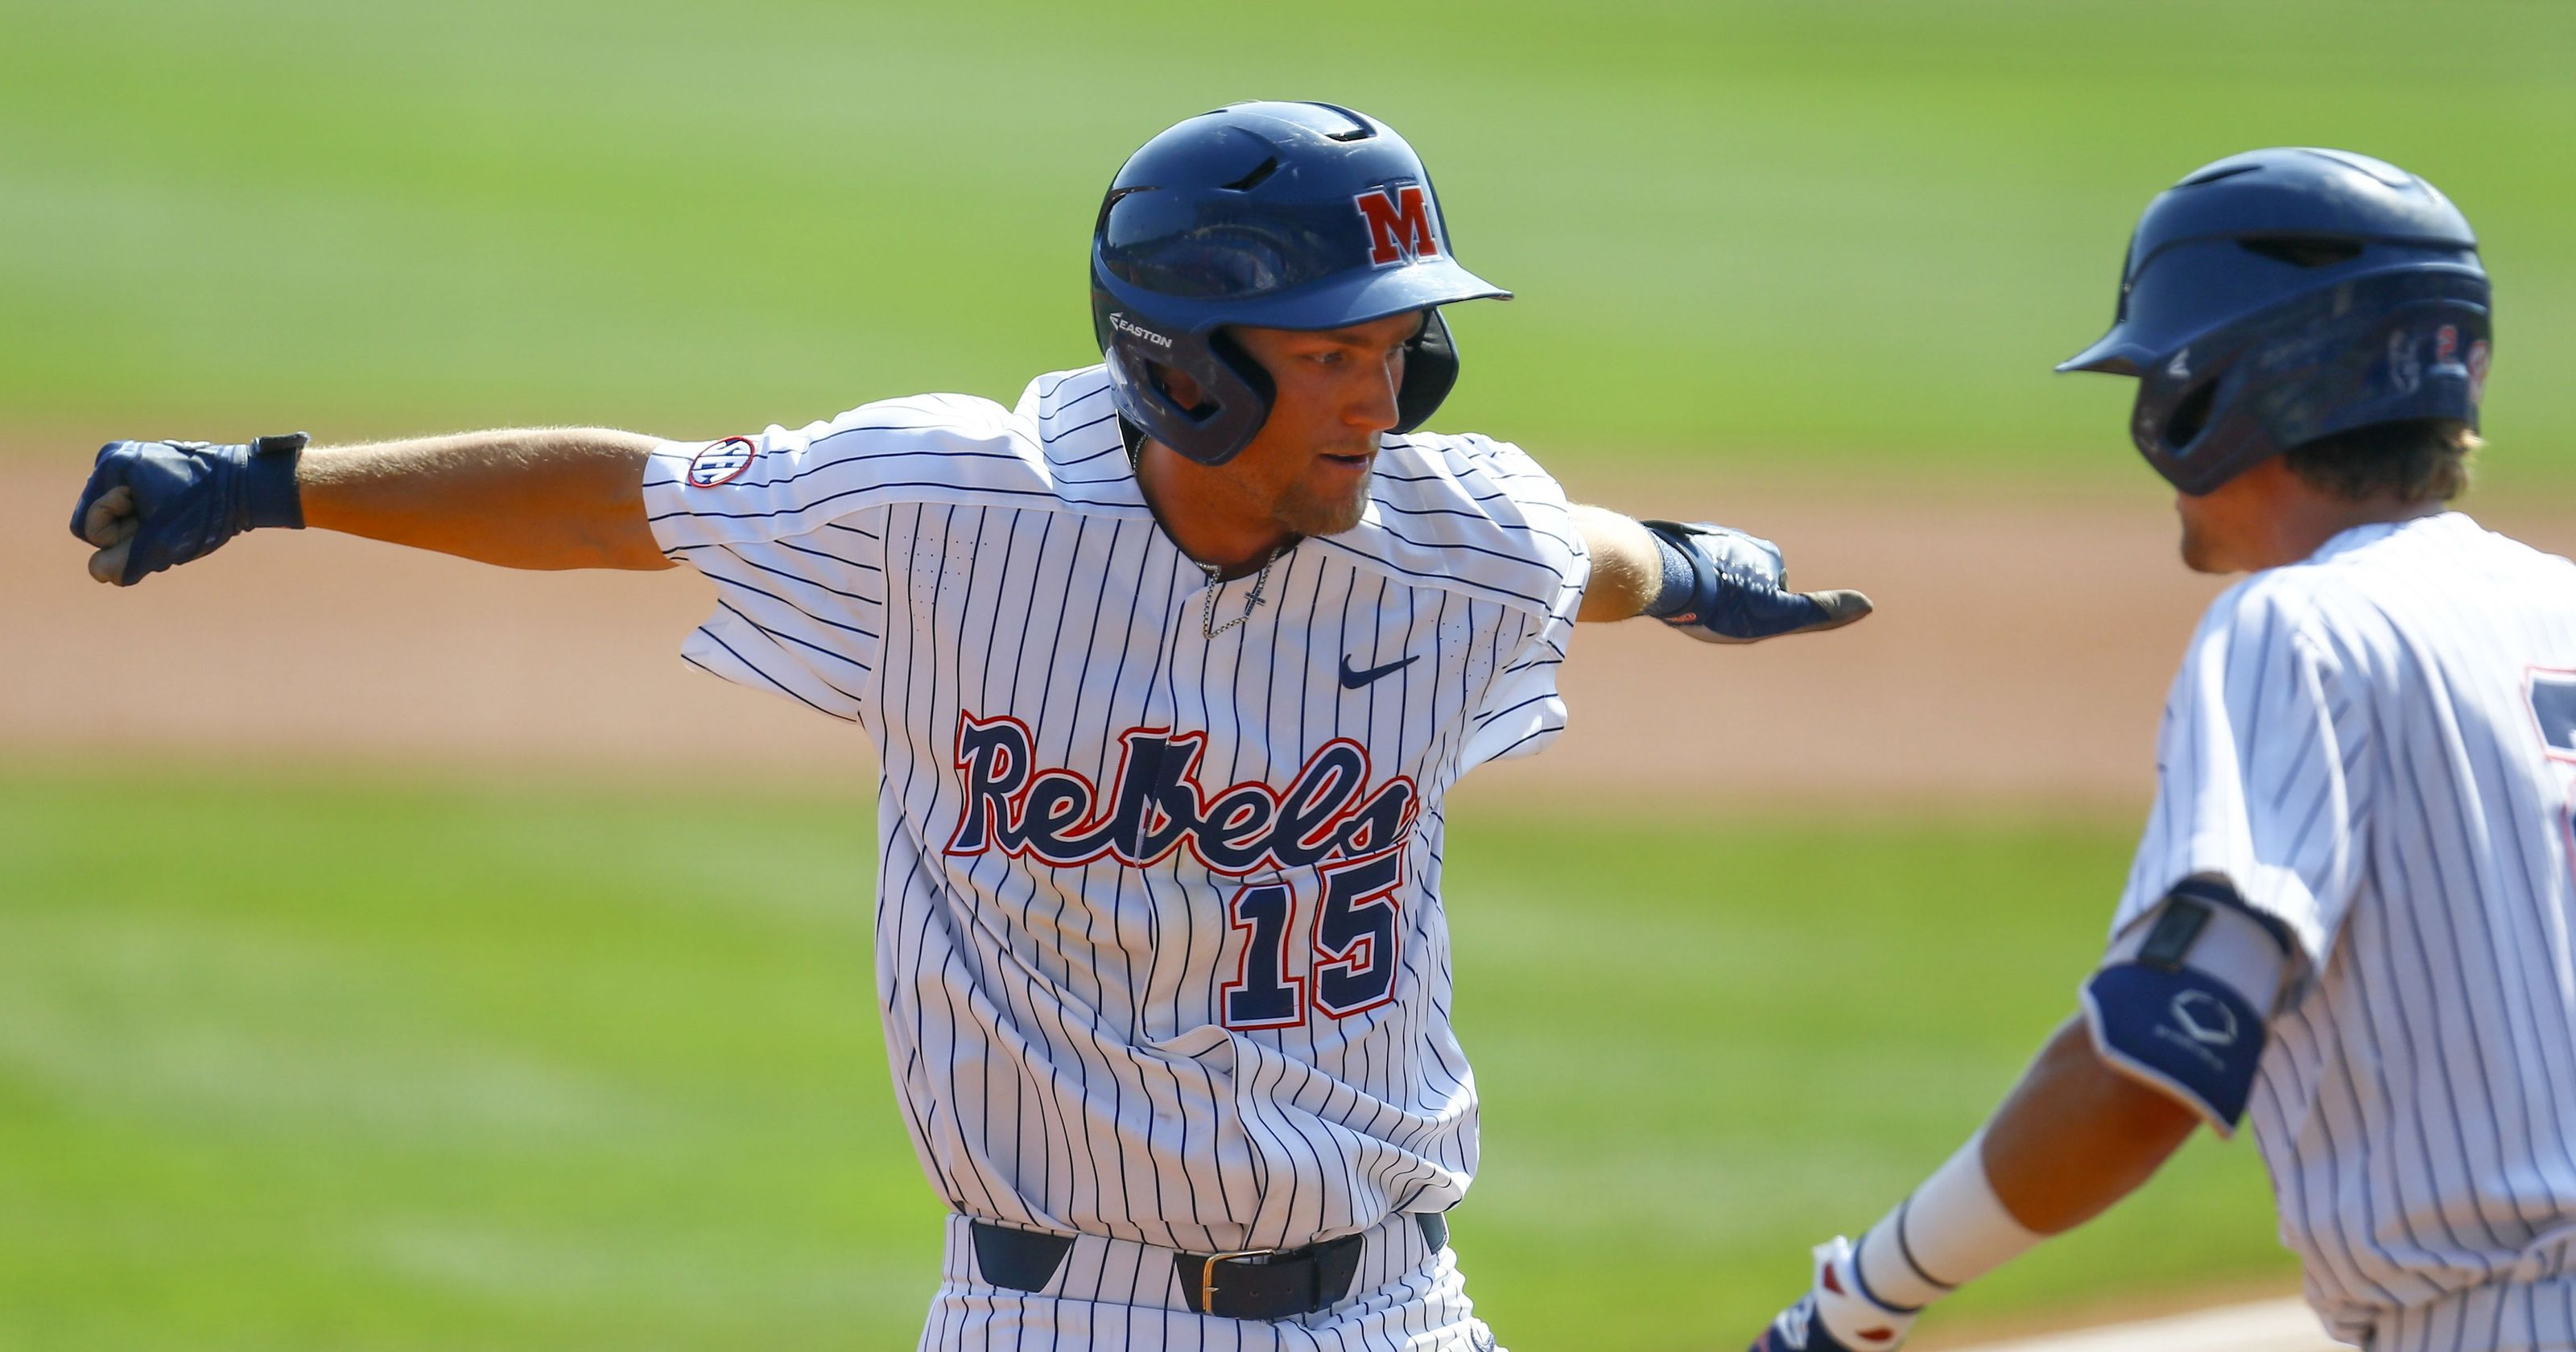 Ole Miss ends losing streak, defeats Tennessee to notch win heading into SEC Tournament